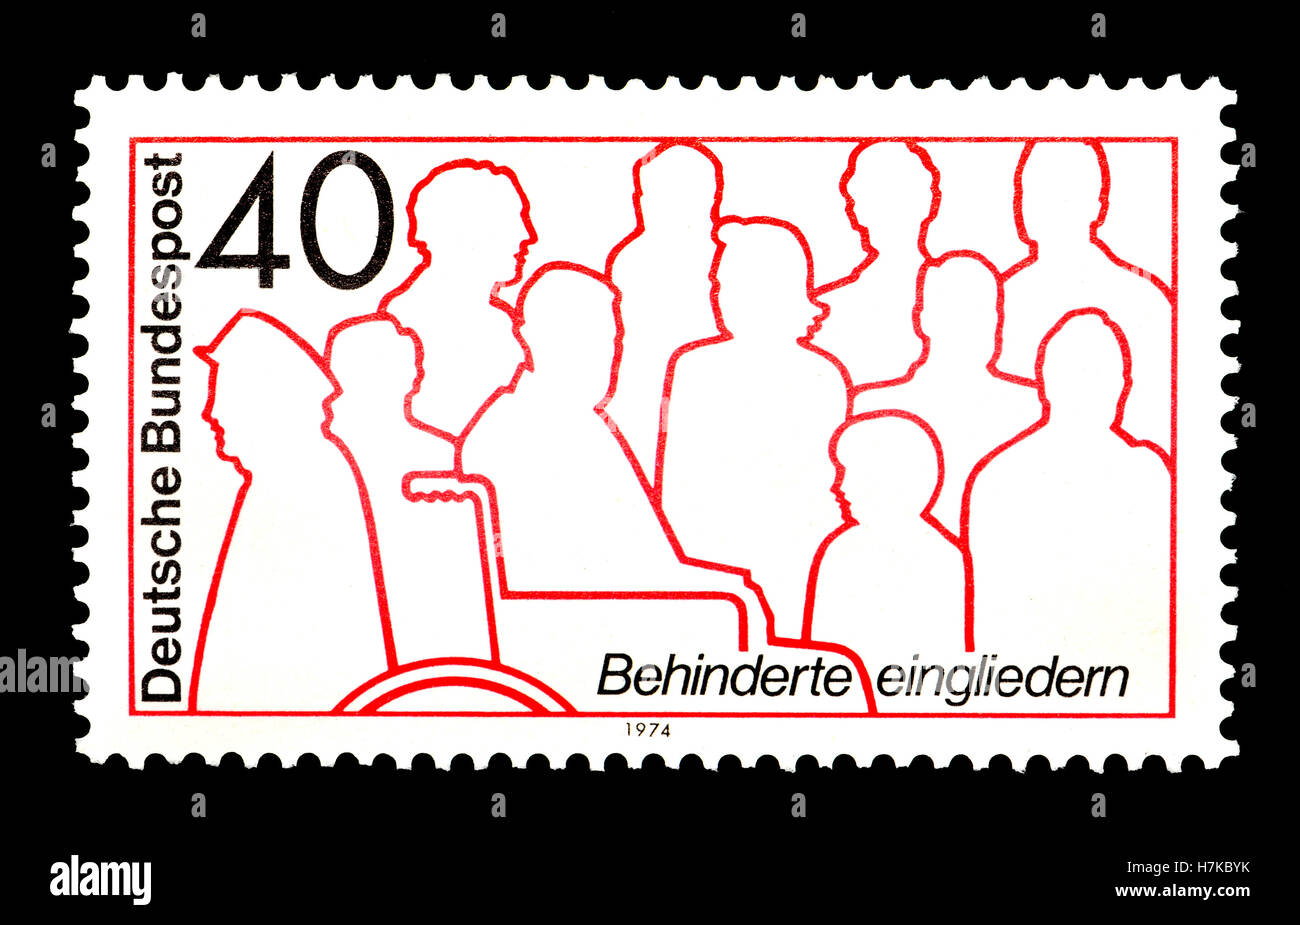 German postage stamp (1974)  : Disability integration / rehabilitation - Stock Image